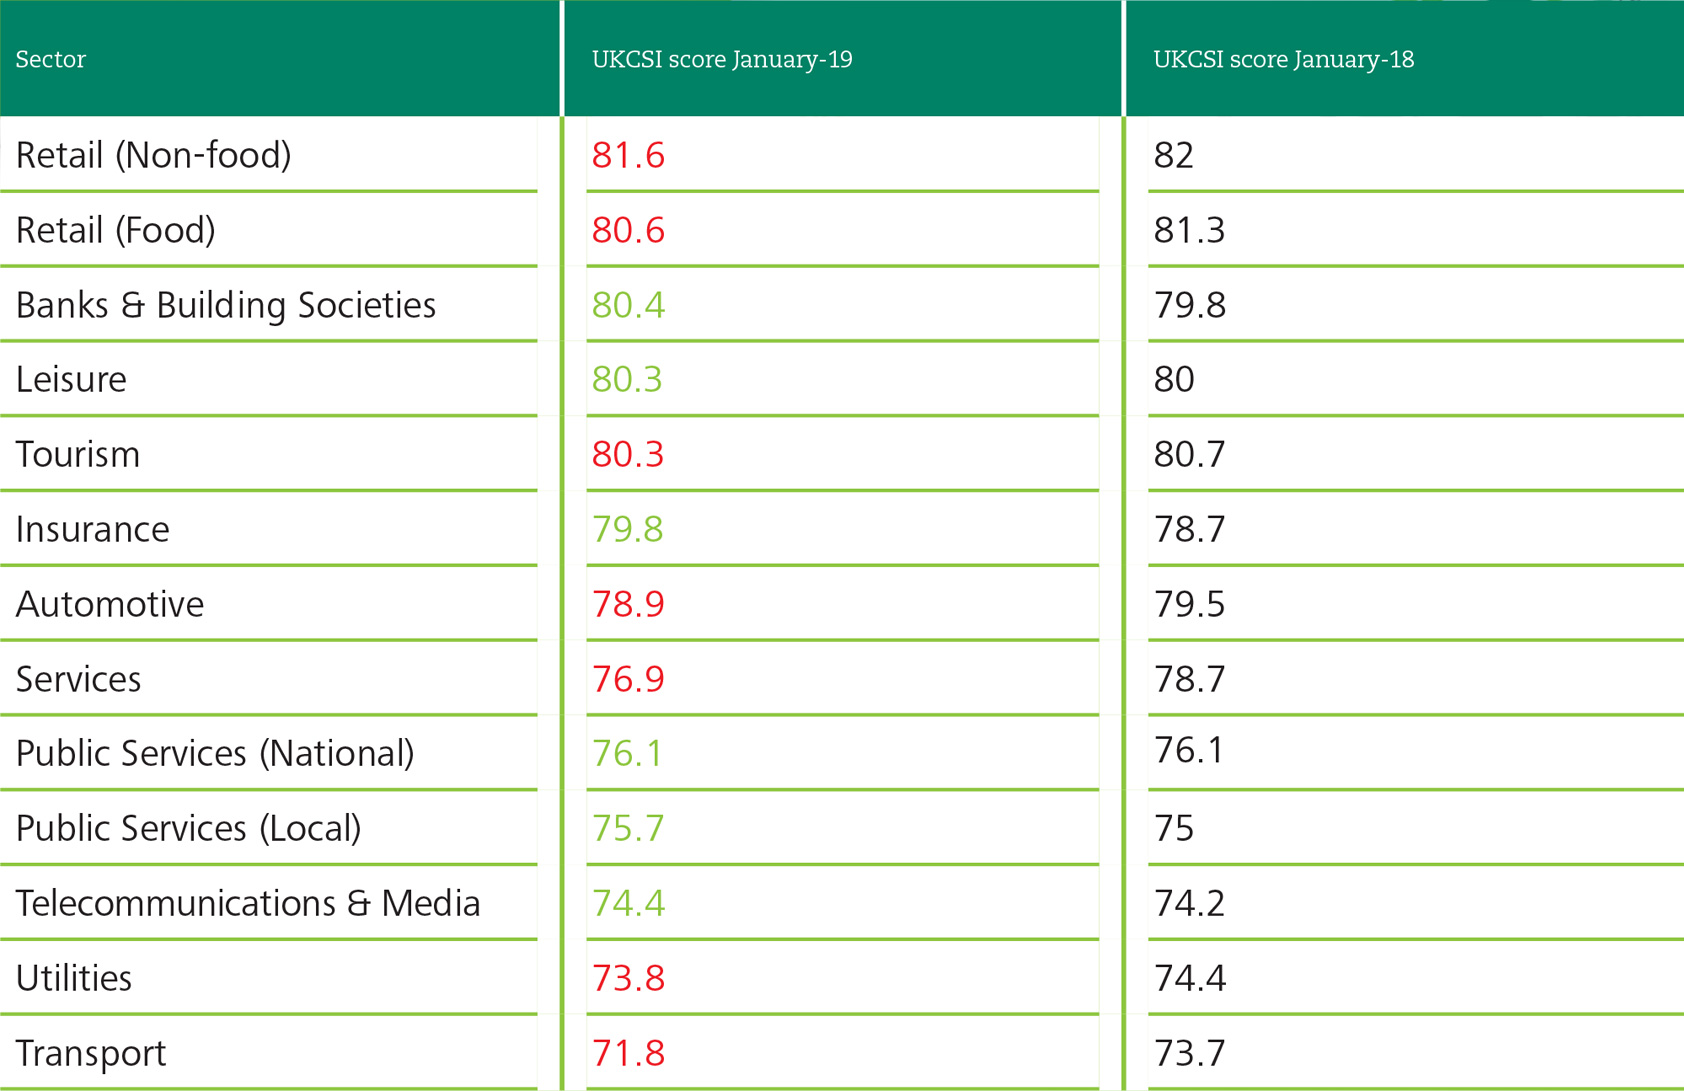 UKCSI Executive Summary Sector Scores